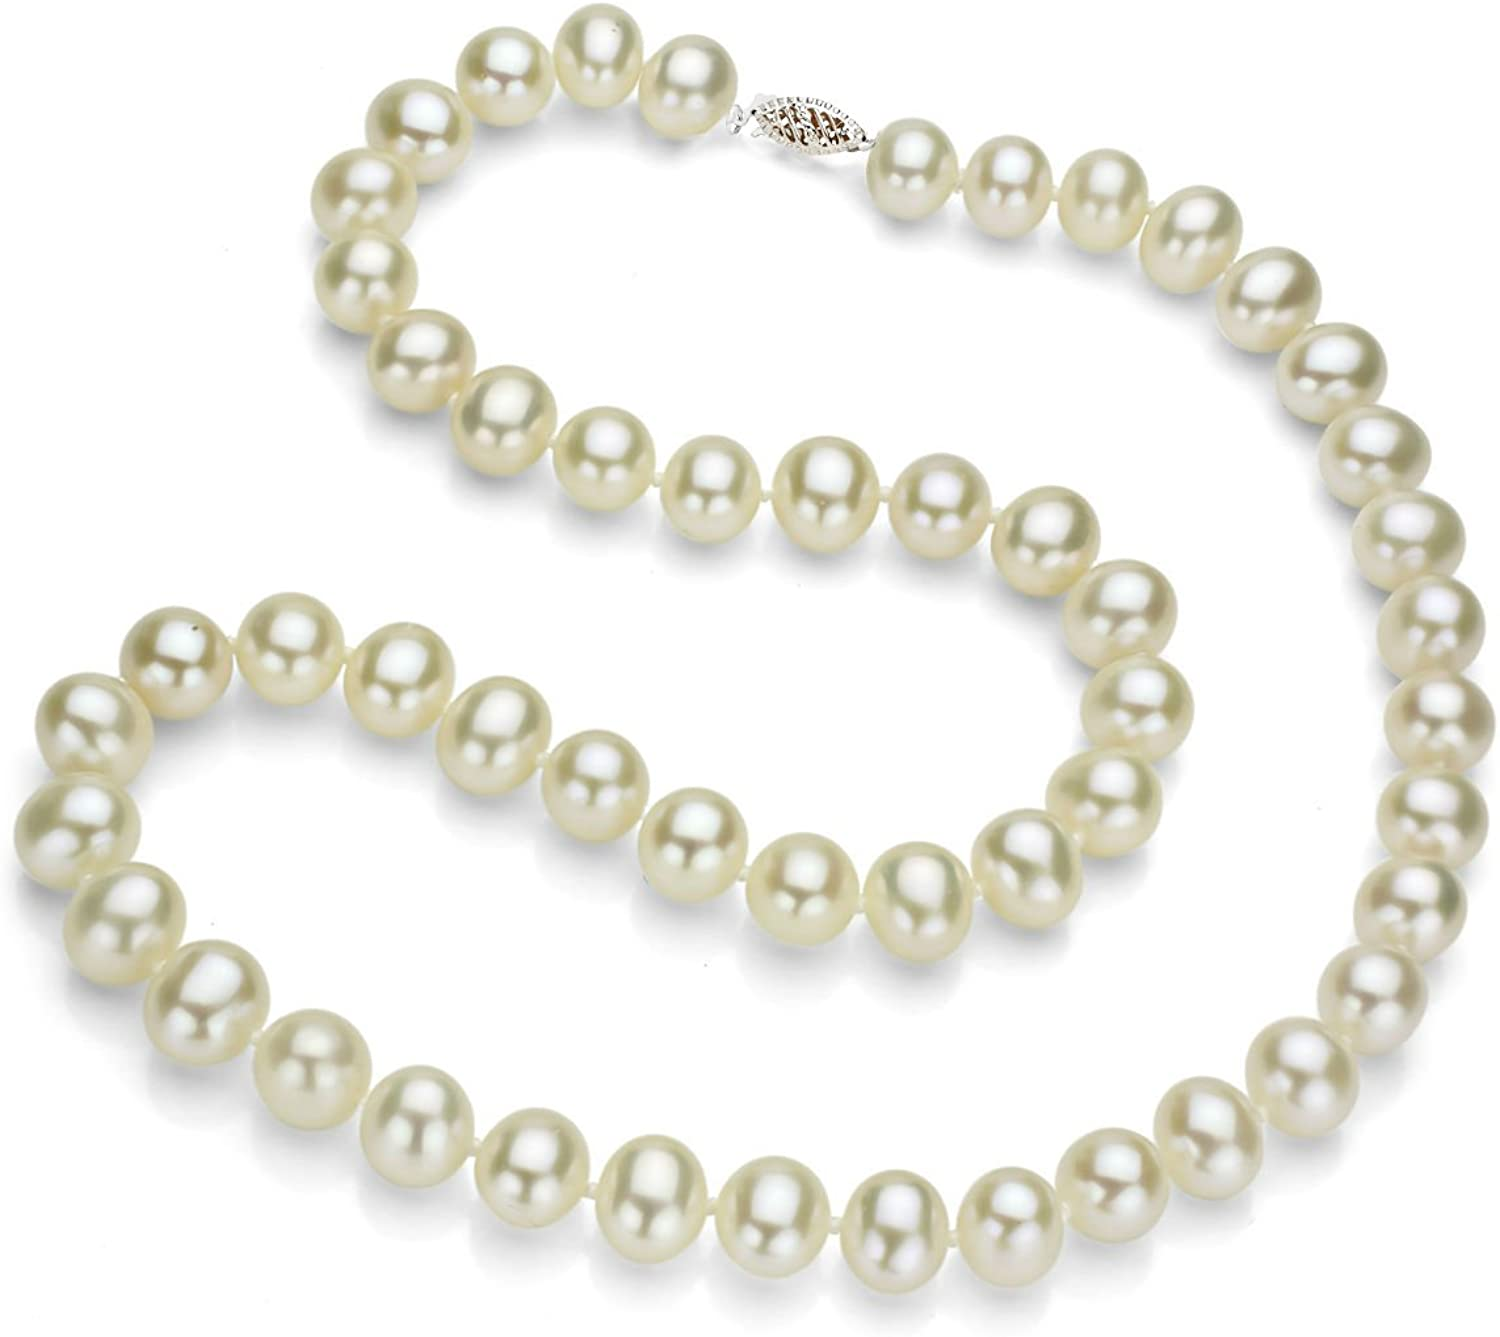 Sterling Silver White Genuine Freshwater Cultured High Luster Pearl Necklace, 18